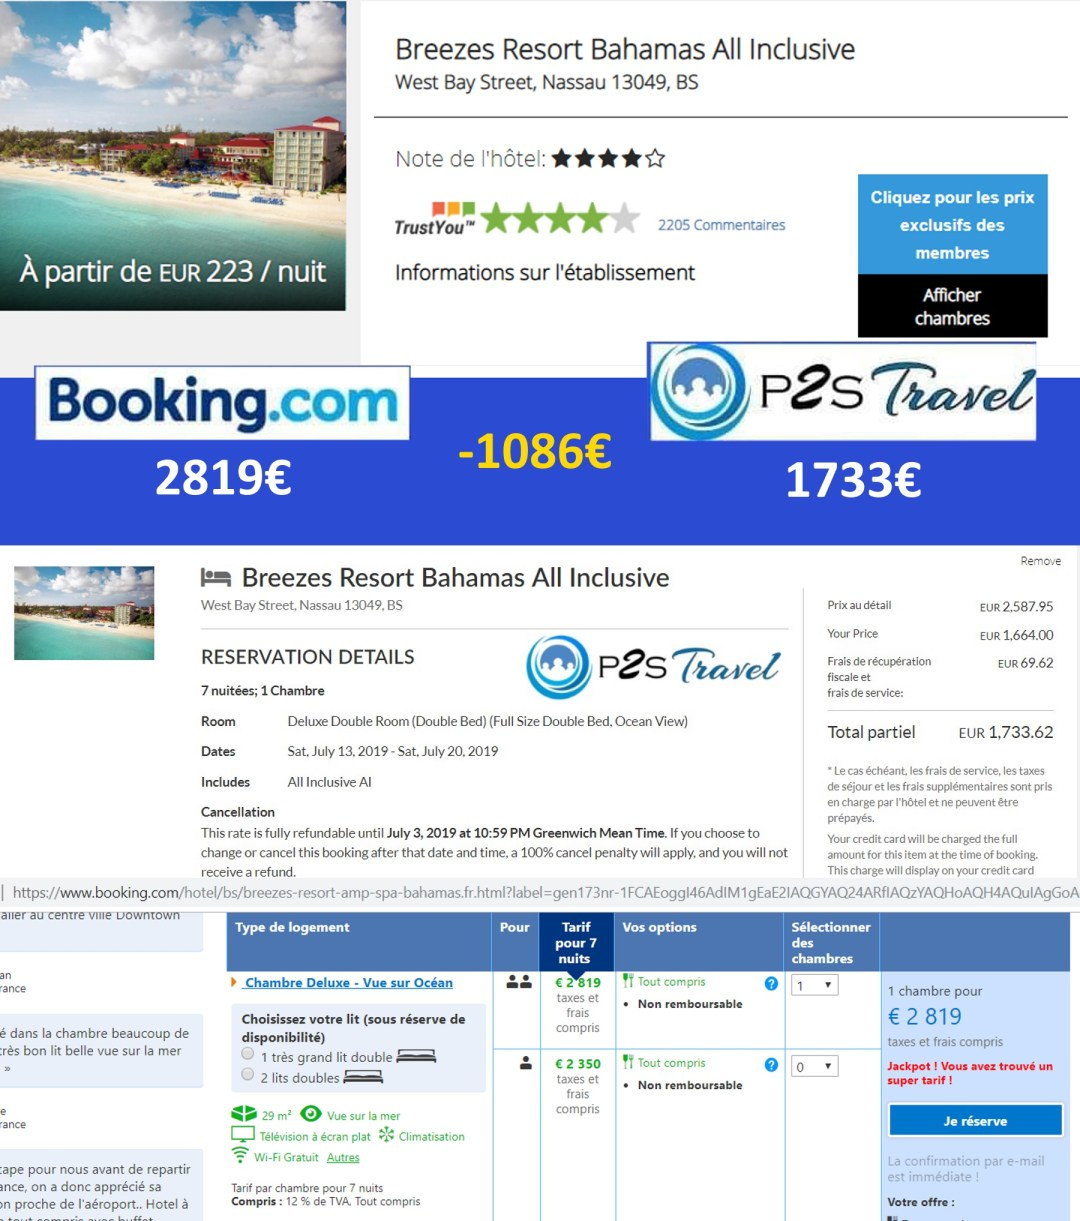 exemple réduction p2s travel par rapport à booking